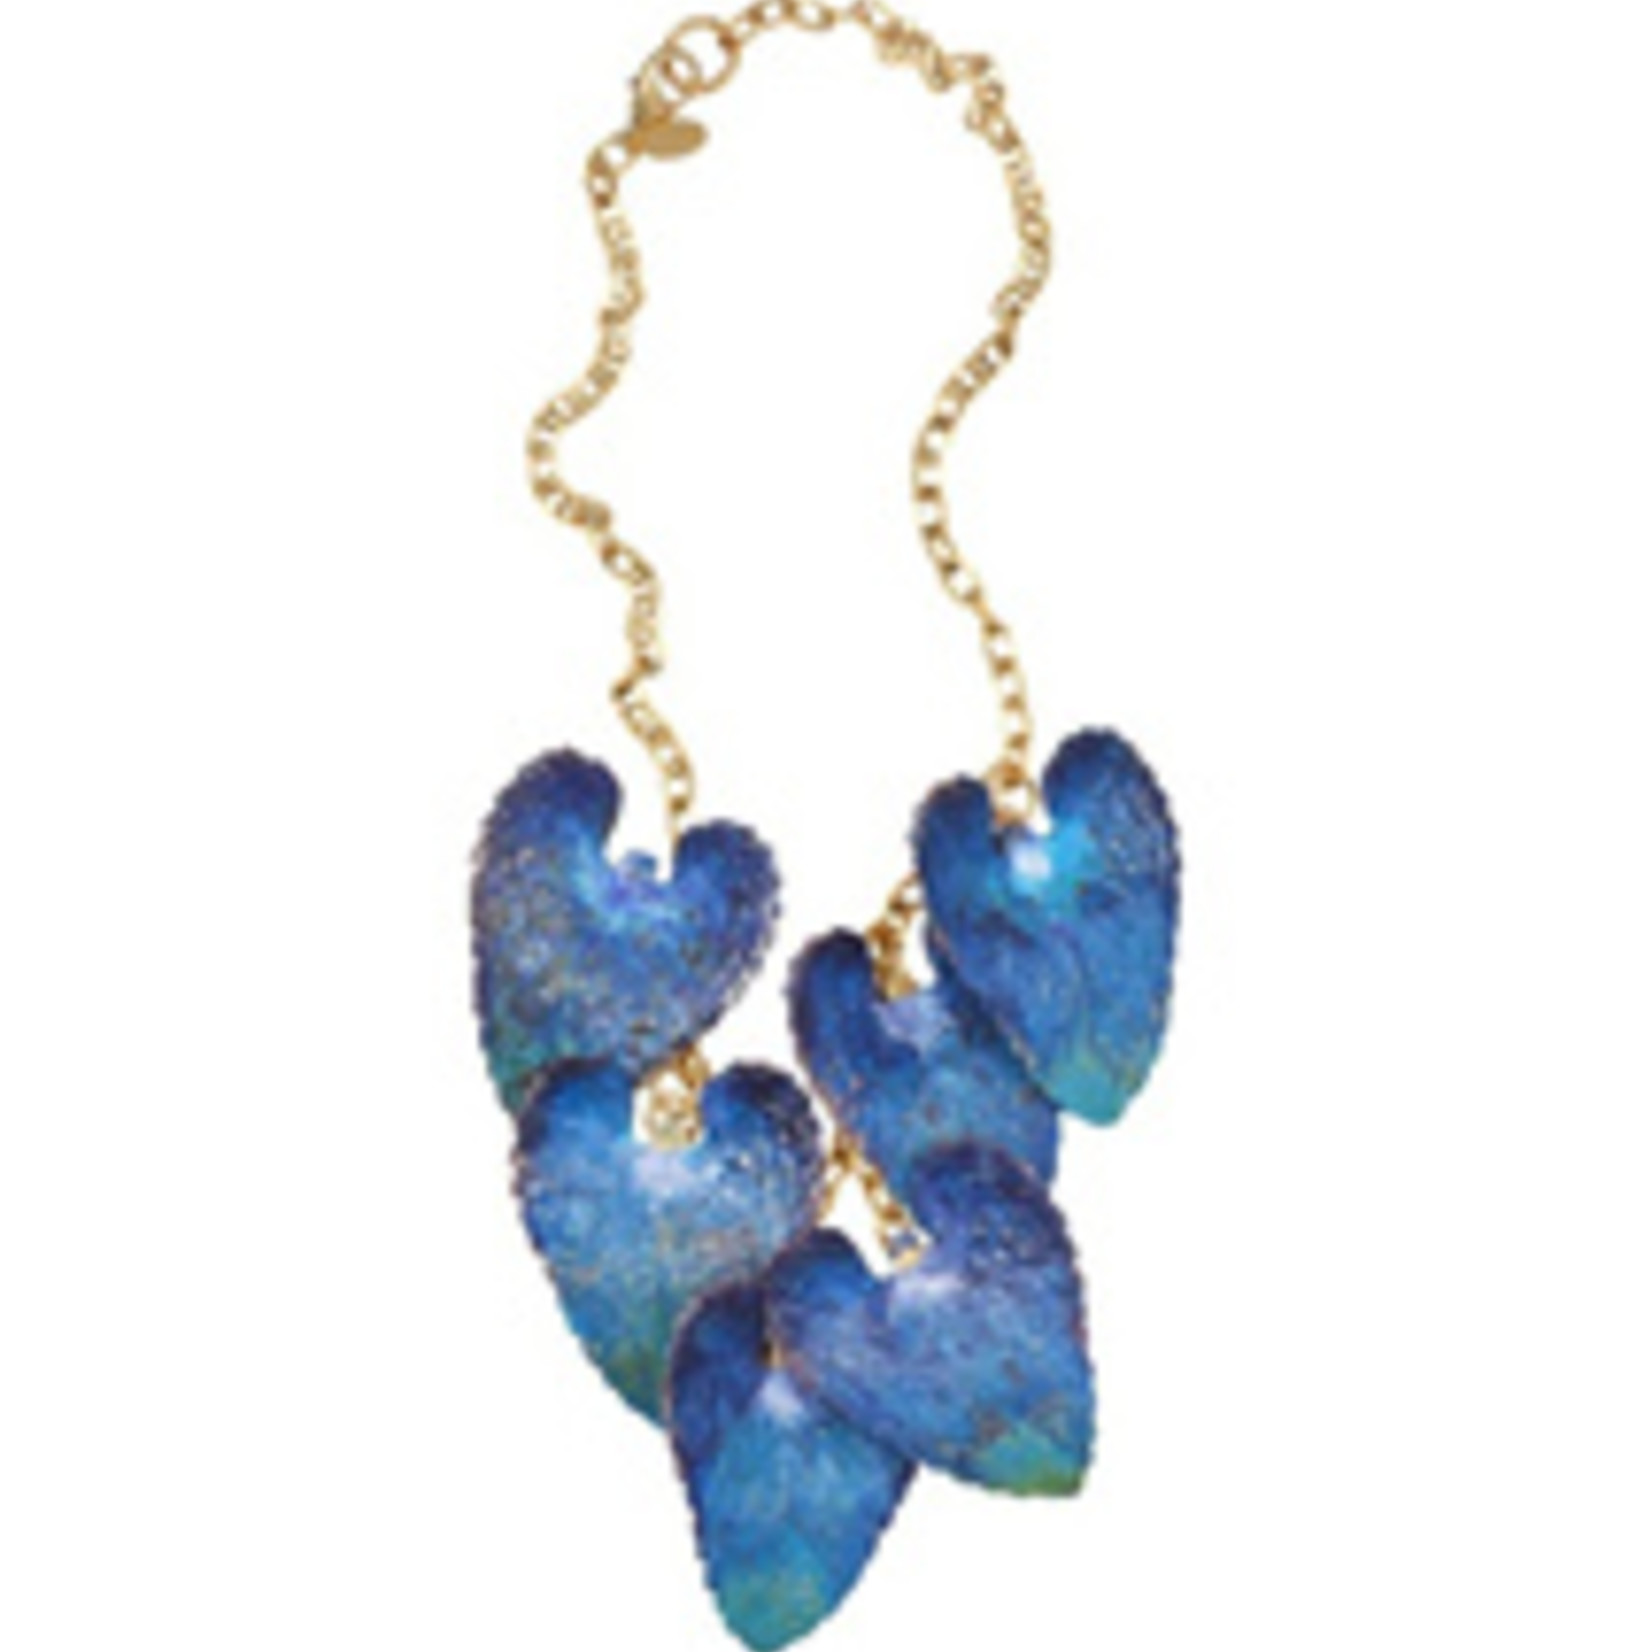 We Dream in Colour Wild Violet Necklace